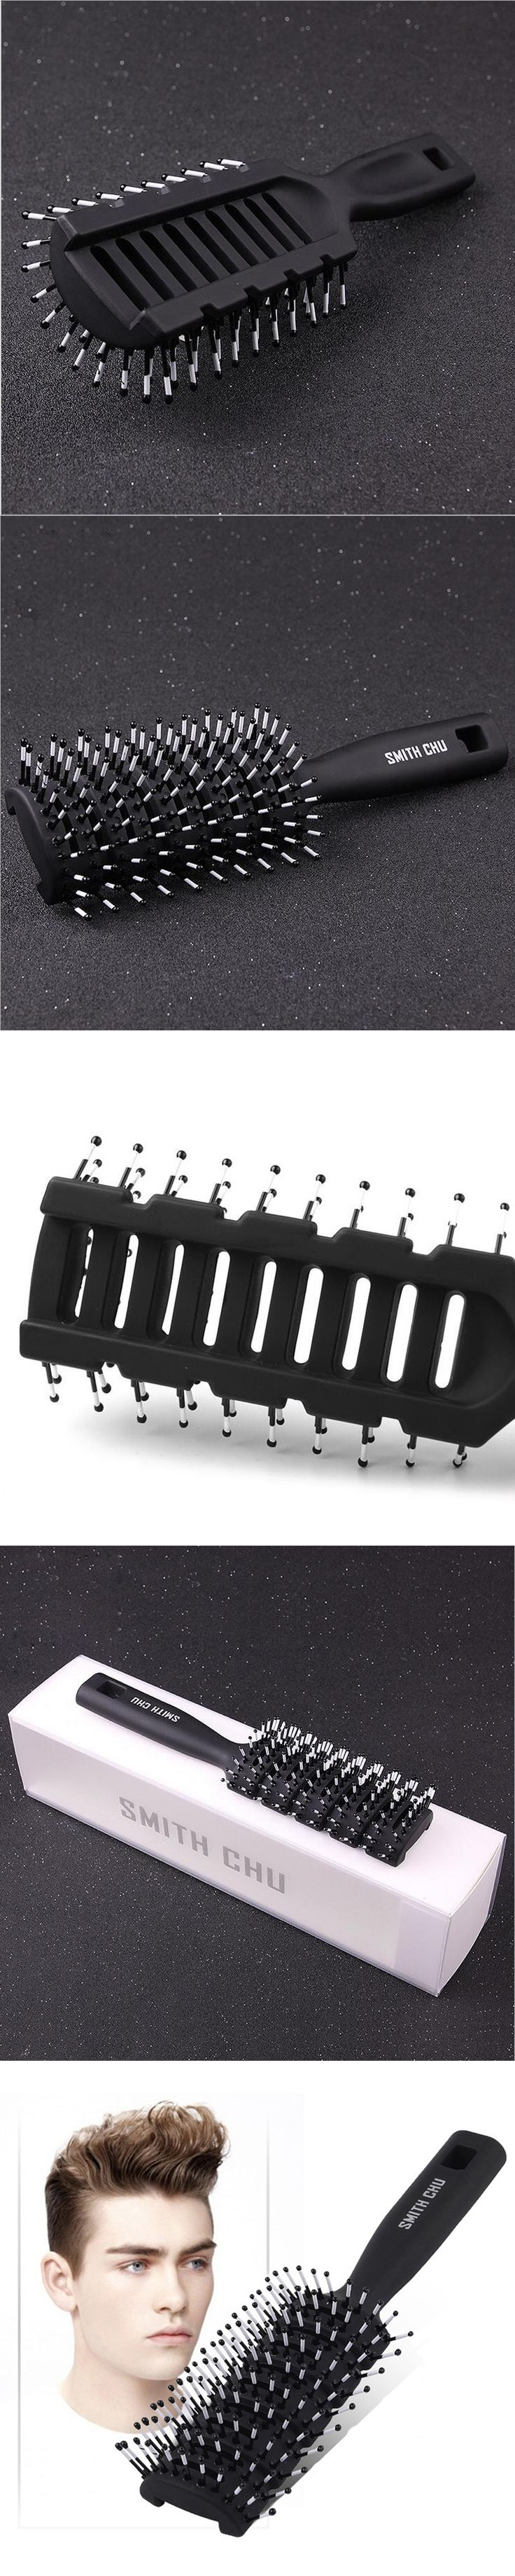 Professional Black Resin Massage Comb for Men Hair Styling Salon Plastic Paddle Hair Brush Barber Hairdressing Styling Tools